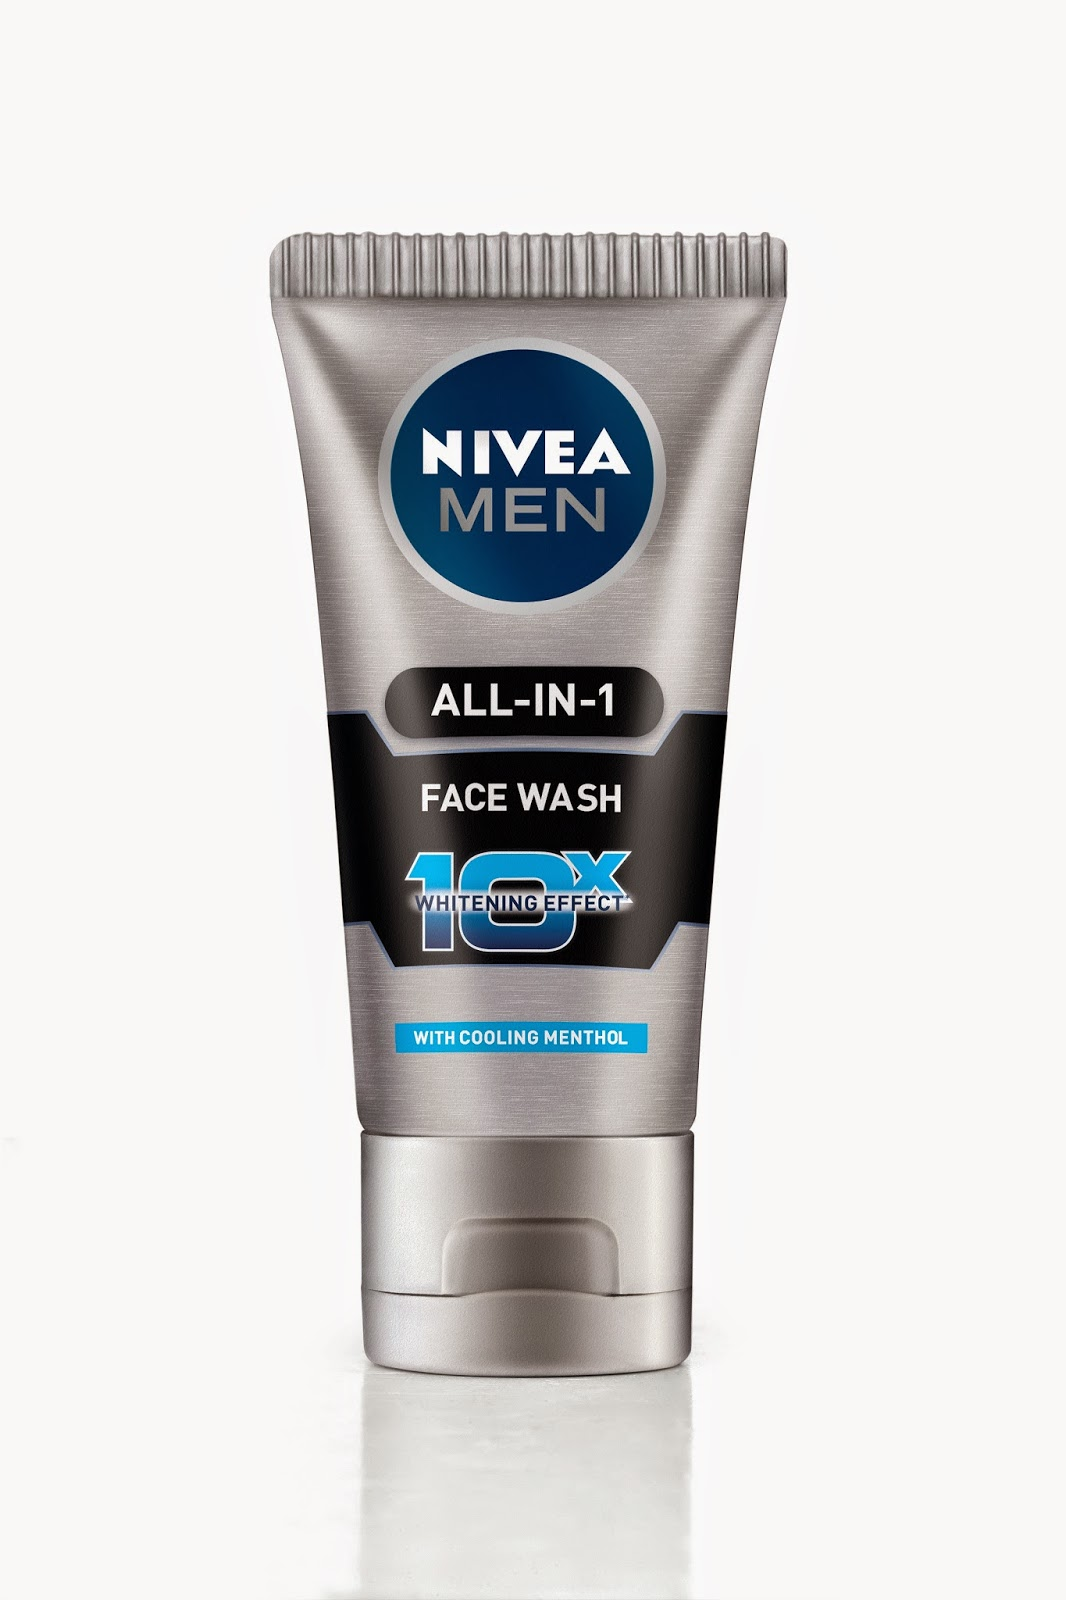 PR:New Nivea Men All-in-1 Face wash